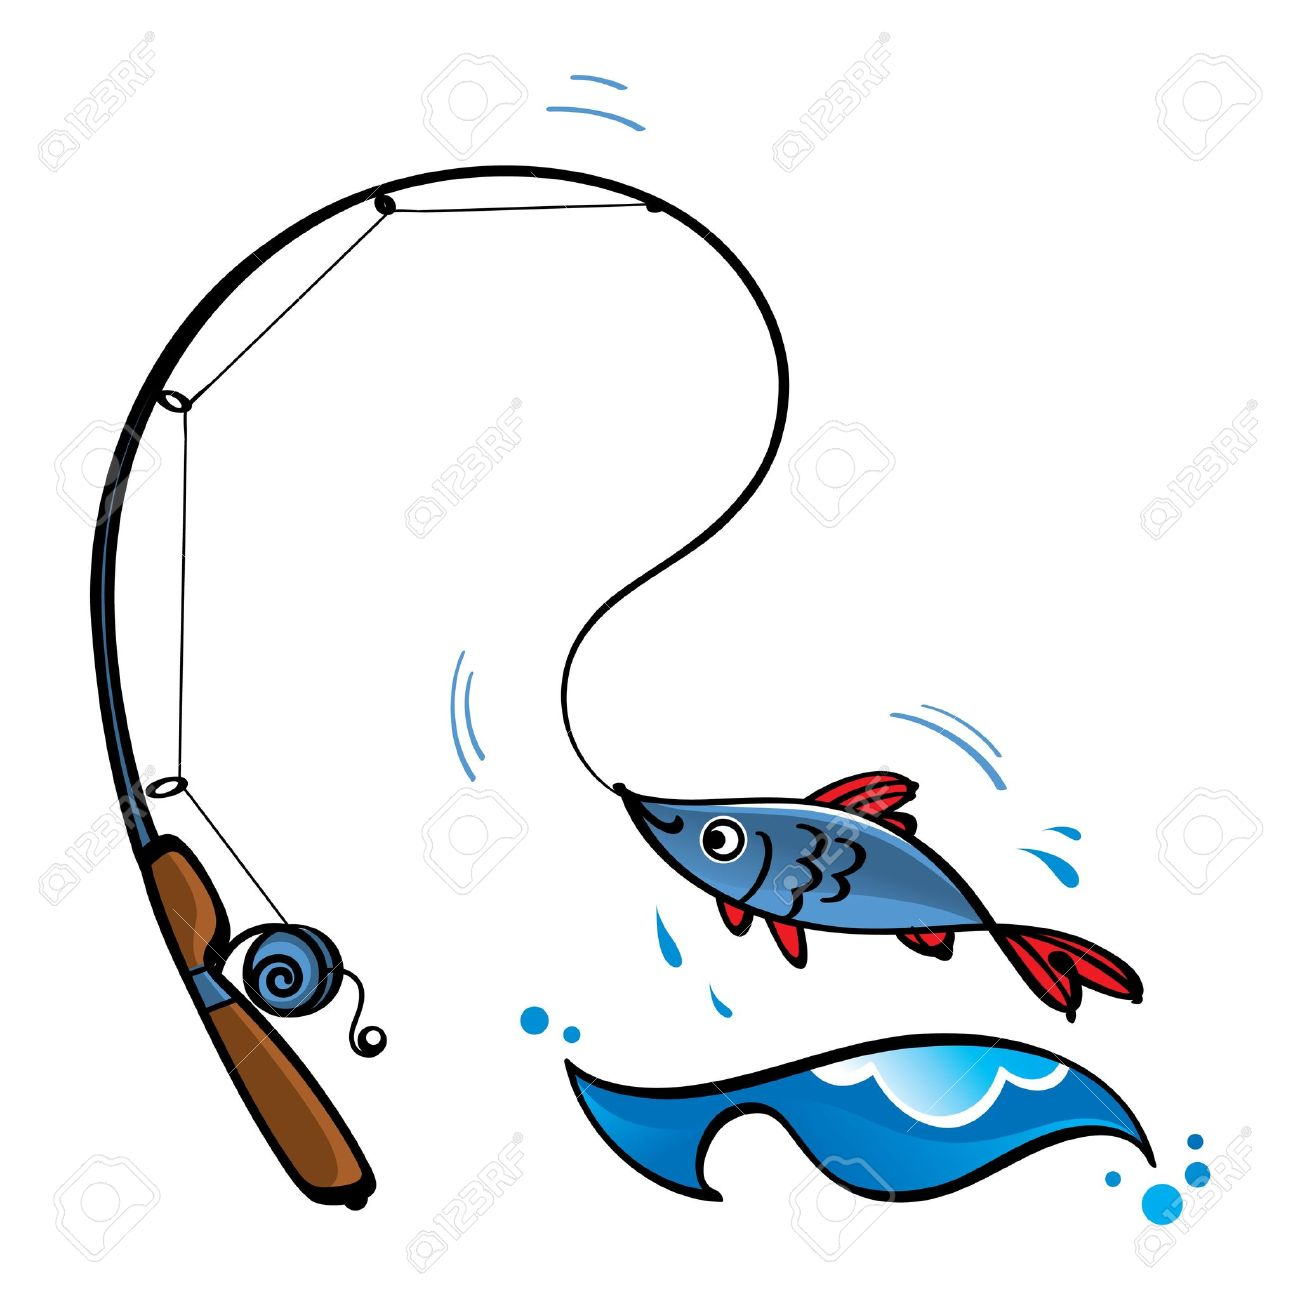 1300x1300 Fishing Rod With Fish Clipart Amp Fishing Rod With Fish Clip Art